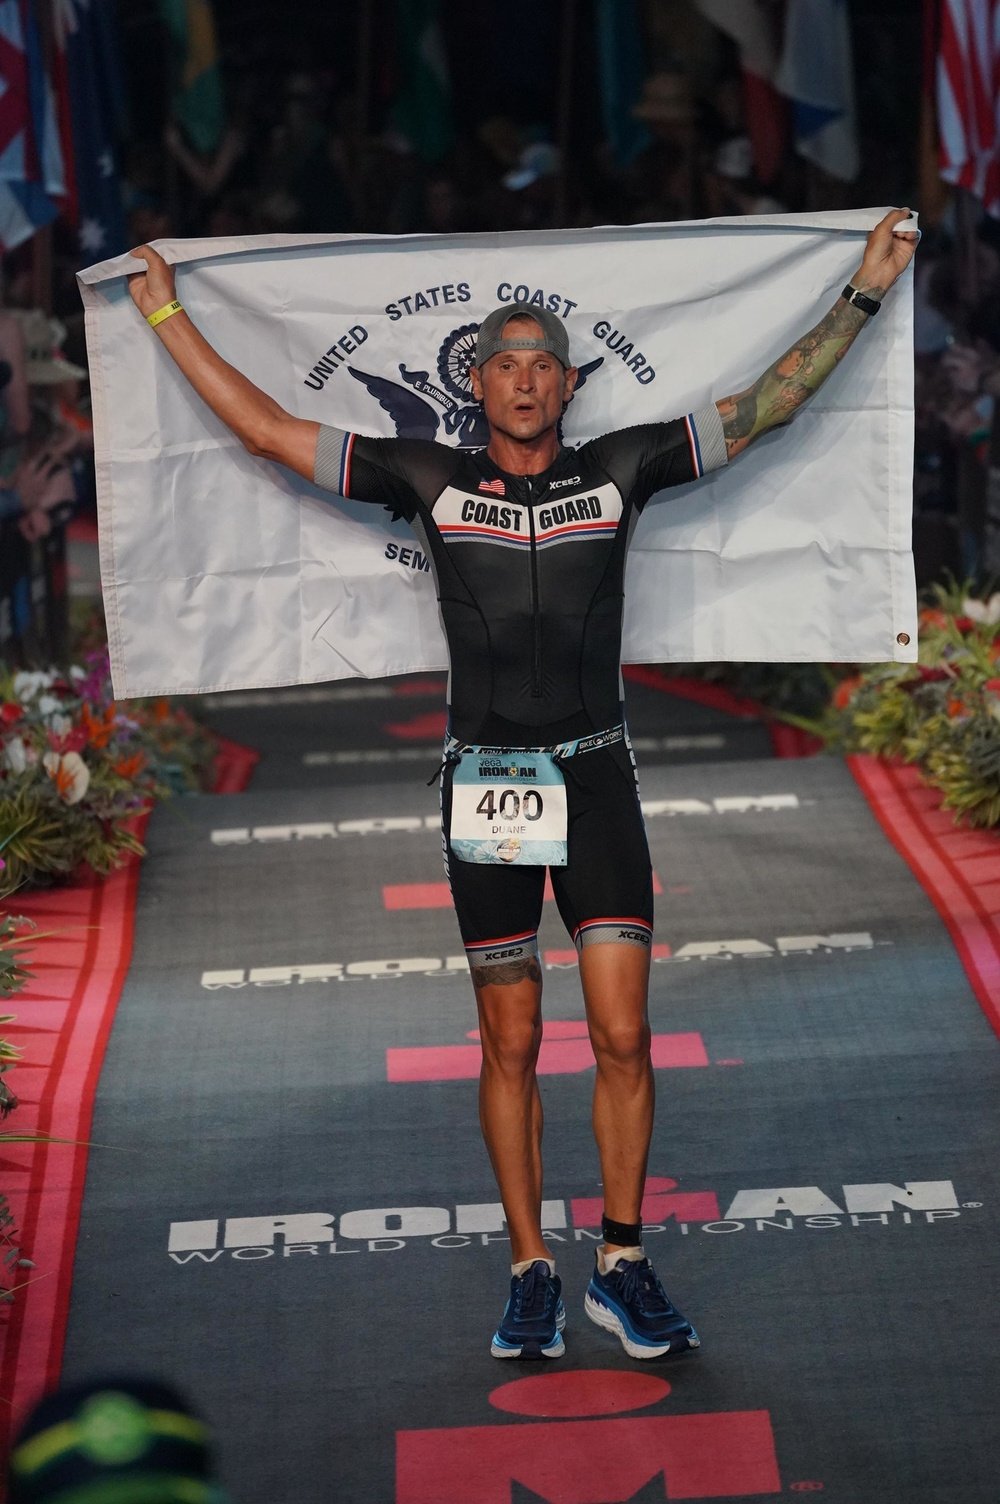 Lt. Duane Zitta crosses the finish line of the Ironman World Championships in Kona, Hawaii, Oct. 15, 2019. Zitta finished the race in 11 hours, 10 minutes, and 14 seconds. (U.S. Coast Guard photo by Lt. Duane Zitta/Released)